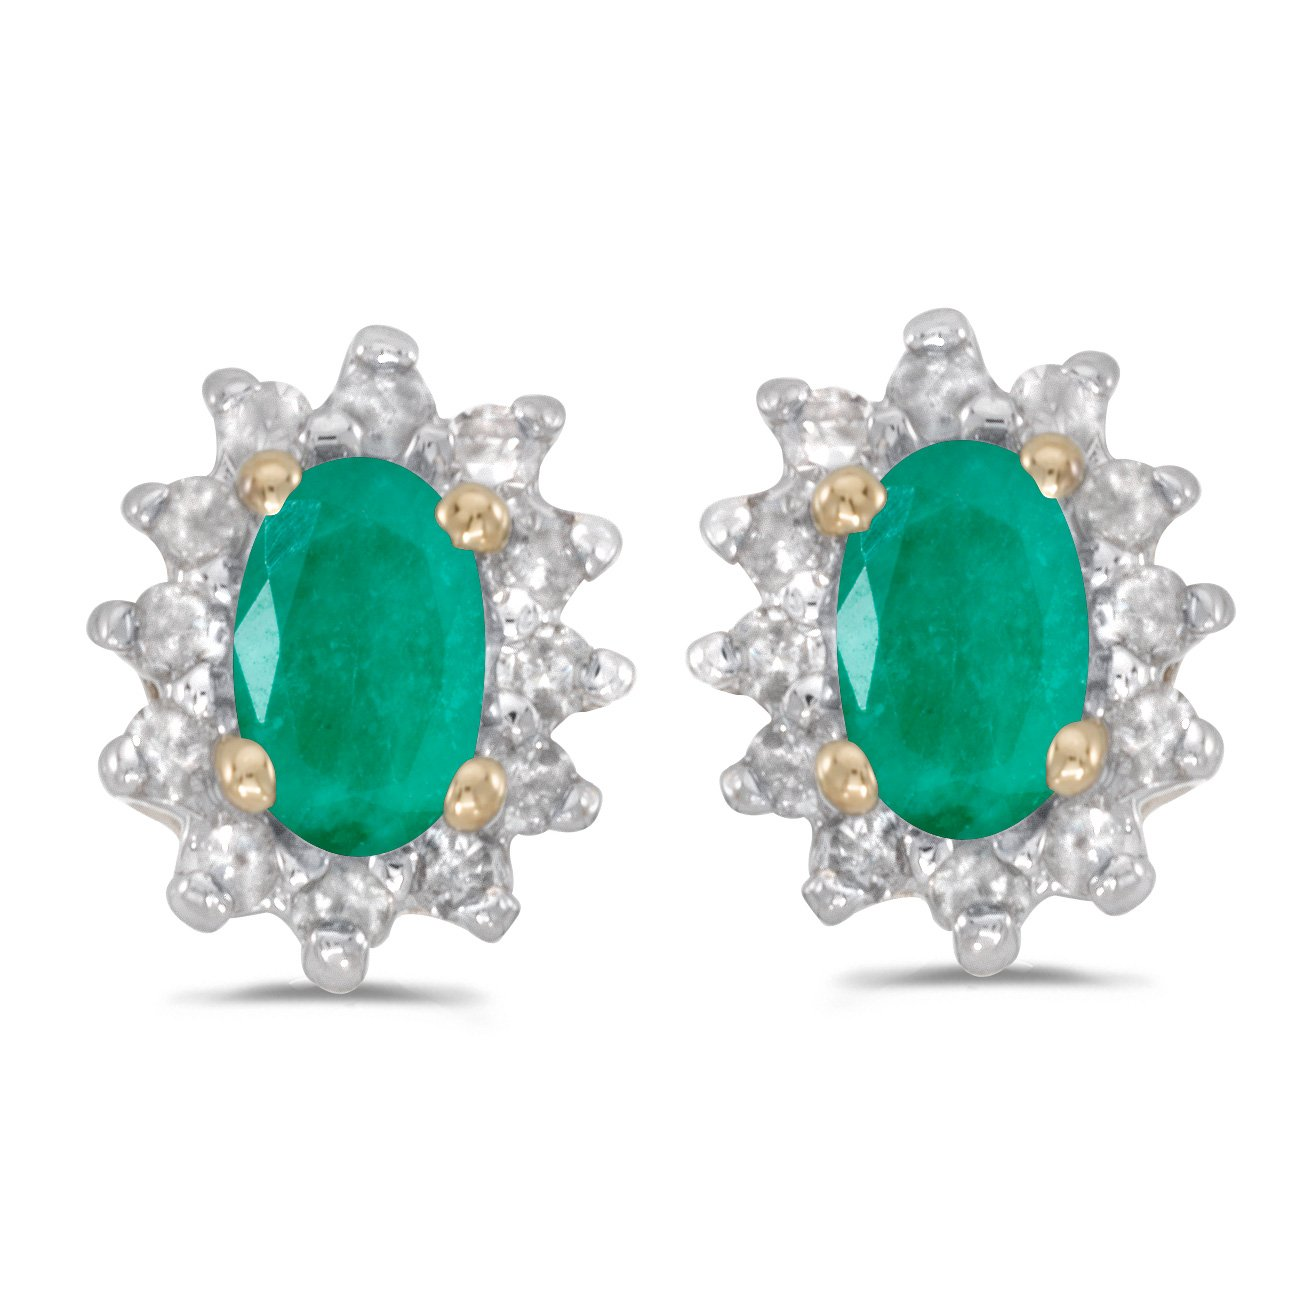 Jewels By Lux 10k Yellow Gold Studs Genuine Green Birthstone Oval Emerald And Diamond Earrings (1/3 Cttw.) by Jewels By Lux (Image #1)